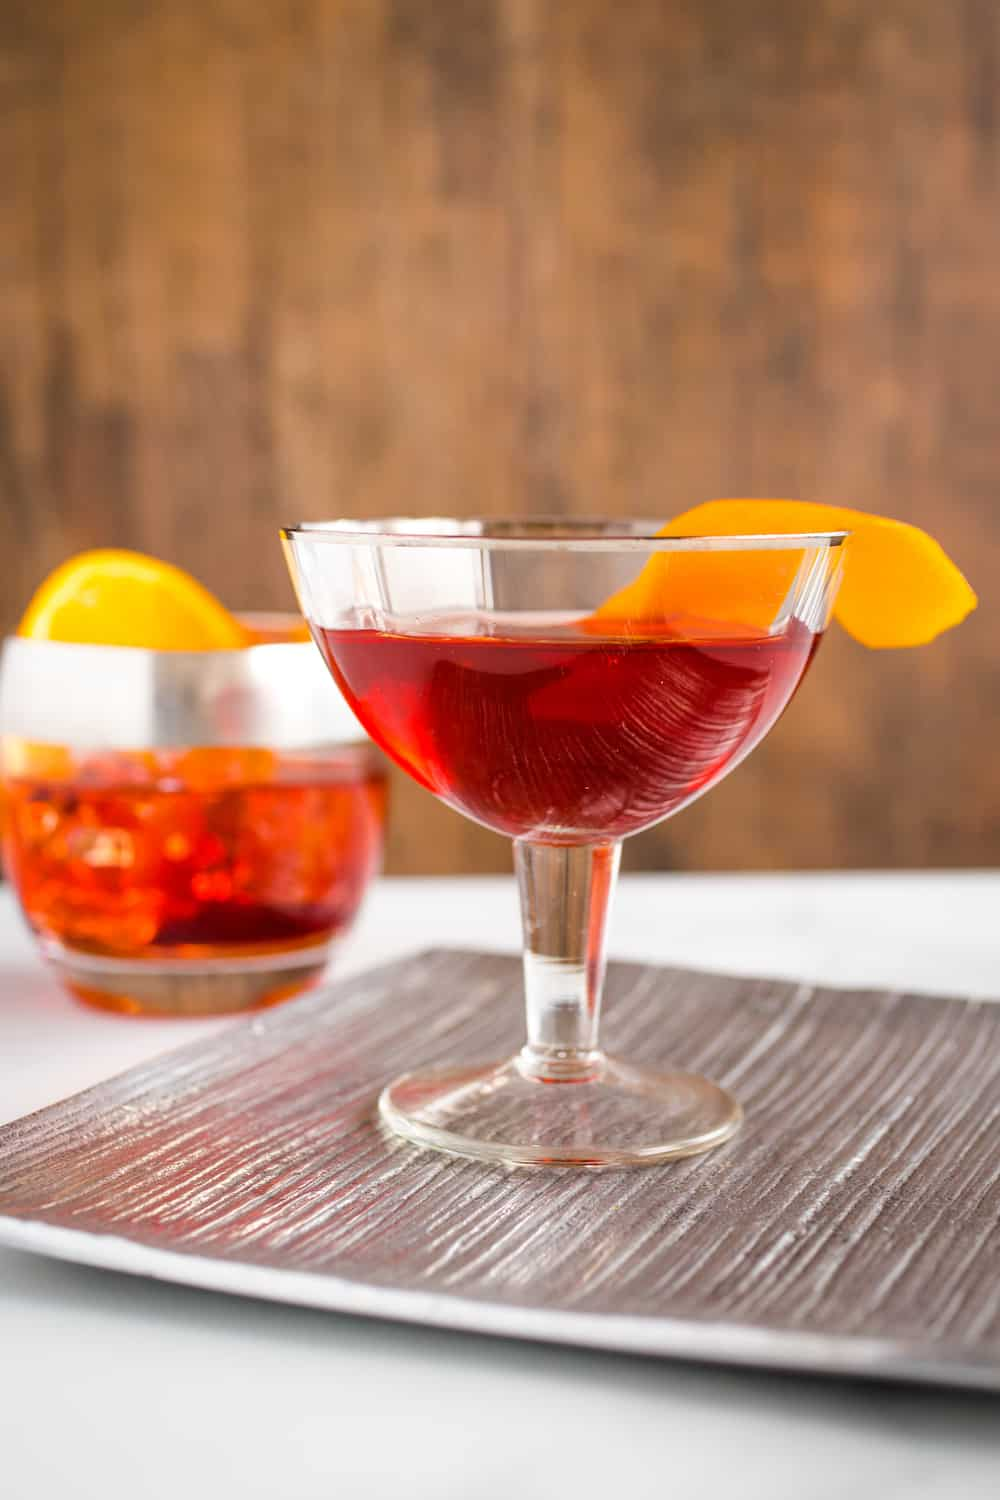 The Boulevardier and the Negroni: Cocktail Classics